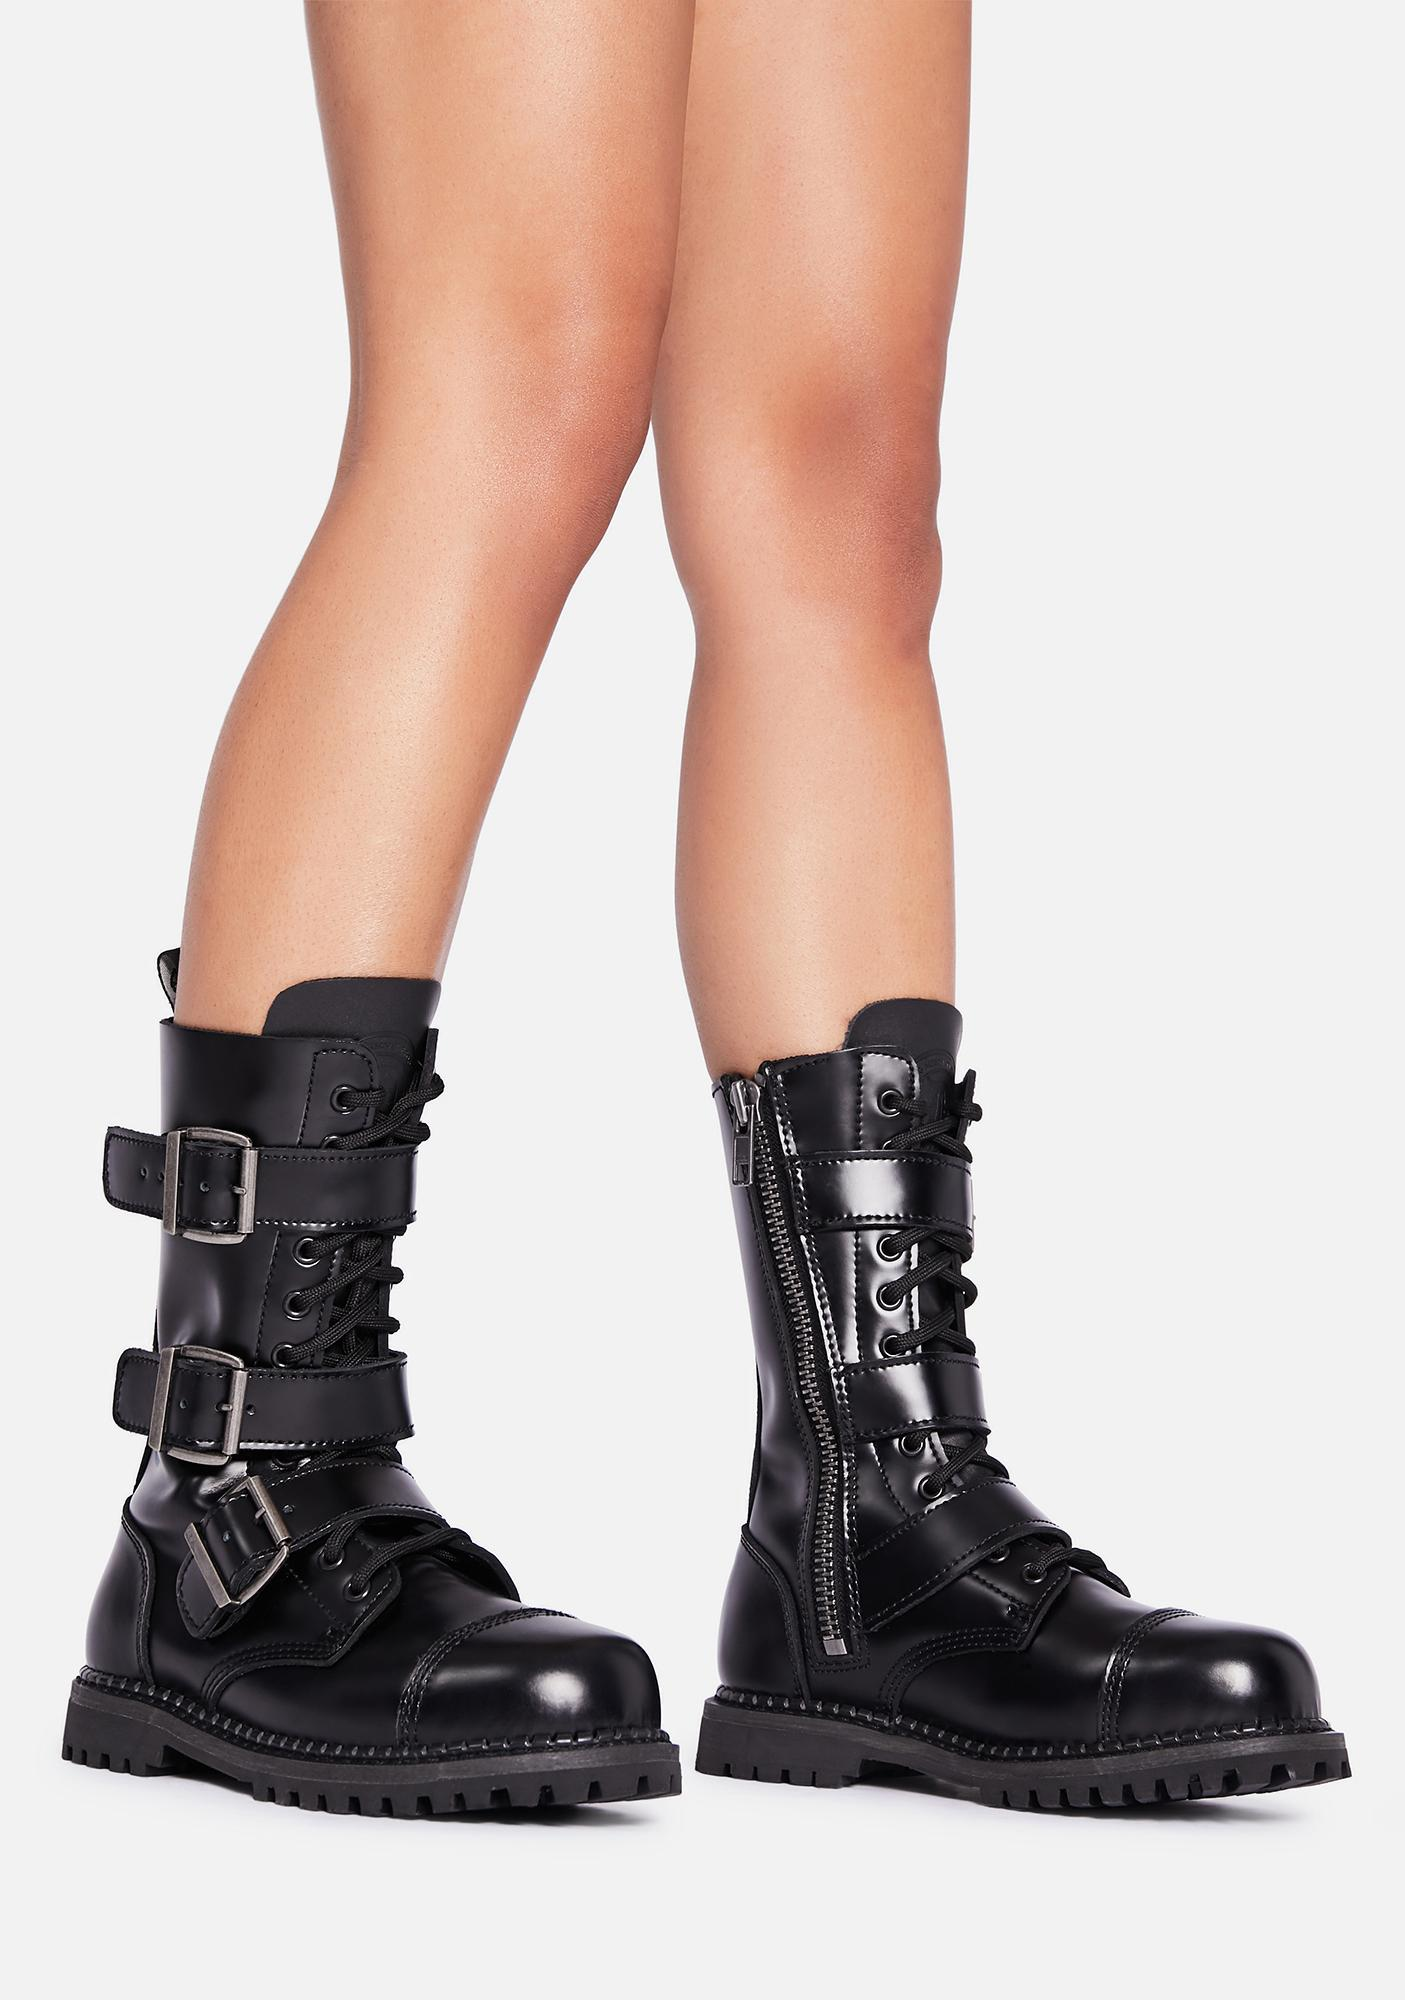 Demonia My Own Way Ankle Boots